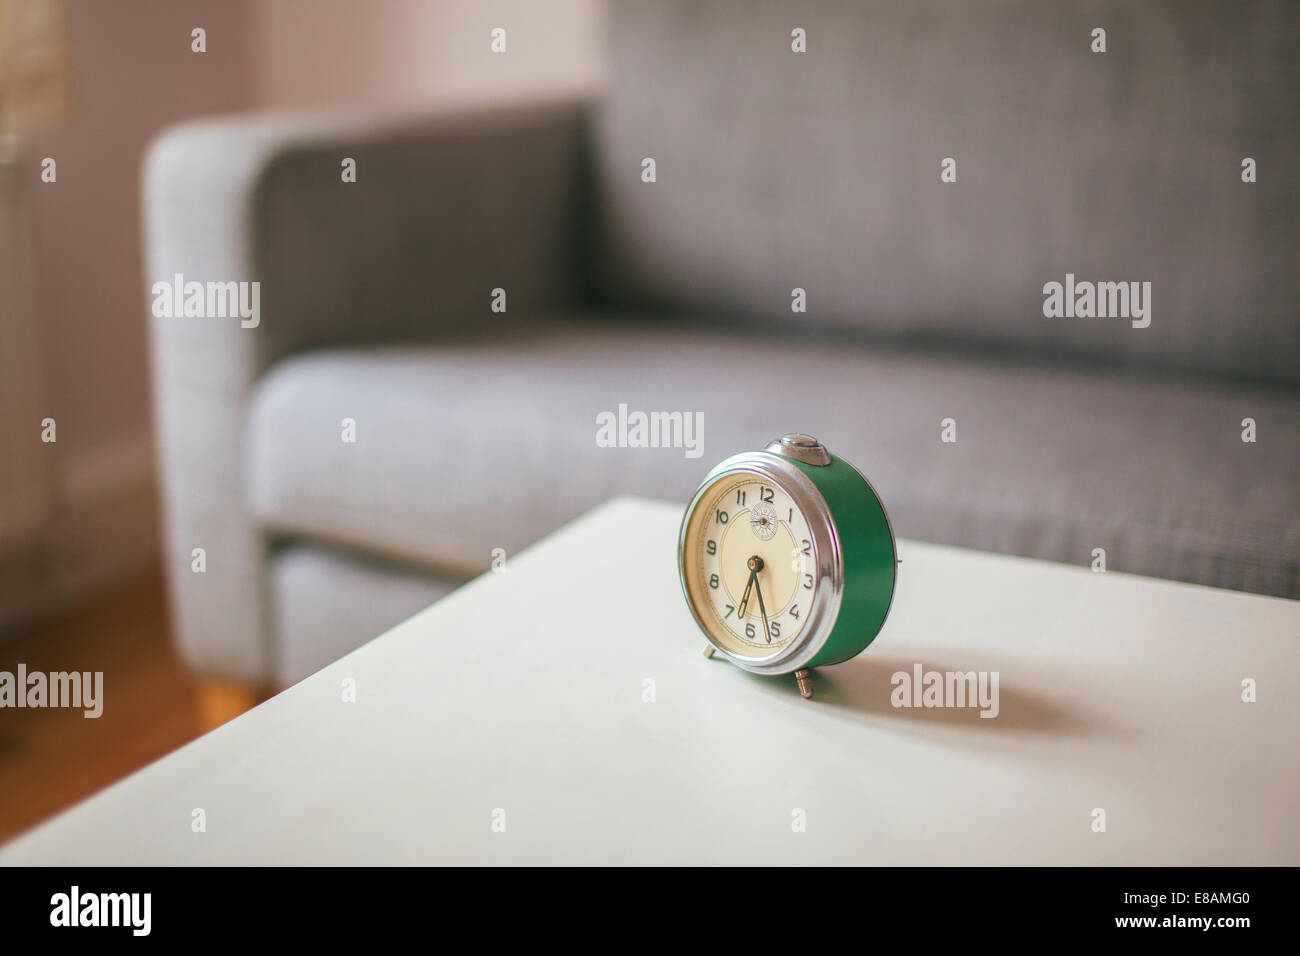 Alarm clock on coffee table in living room - Stock Image